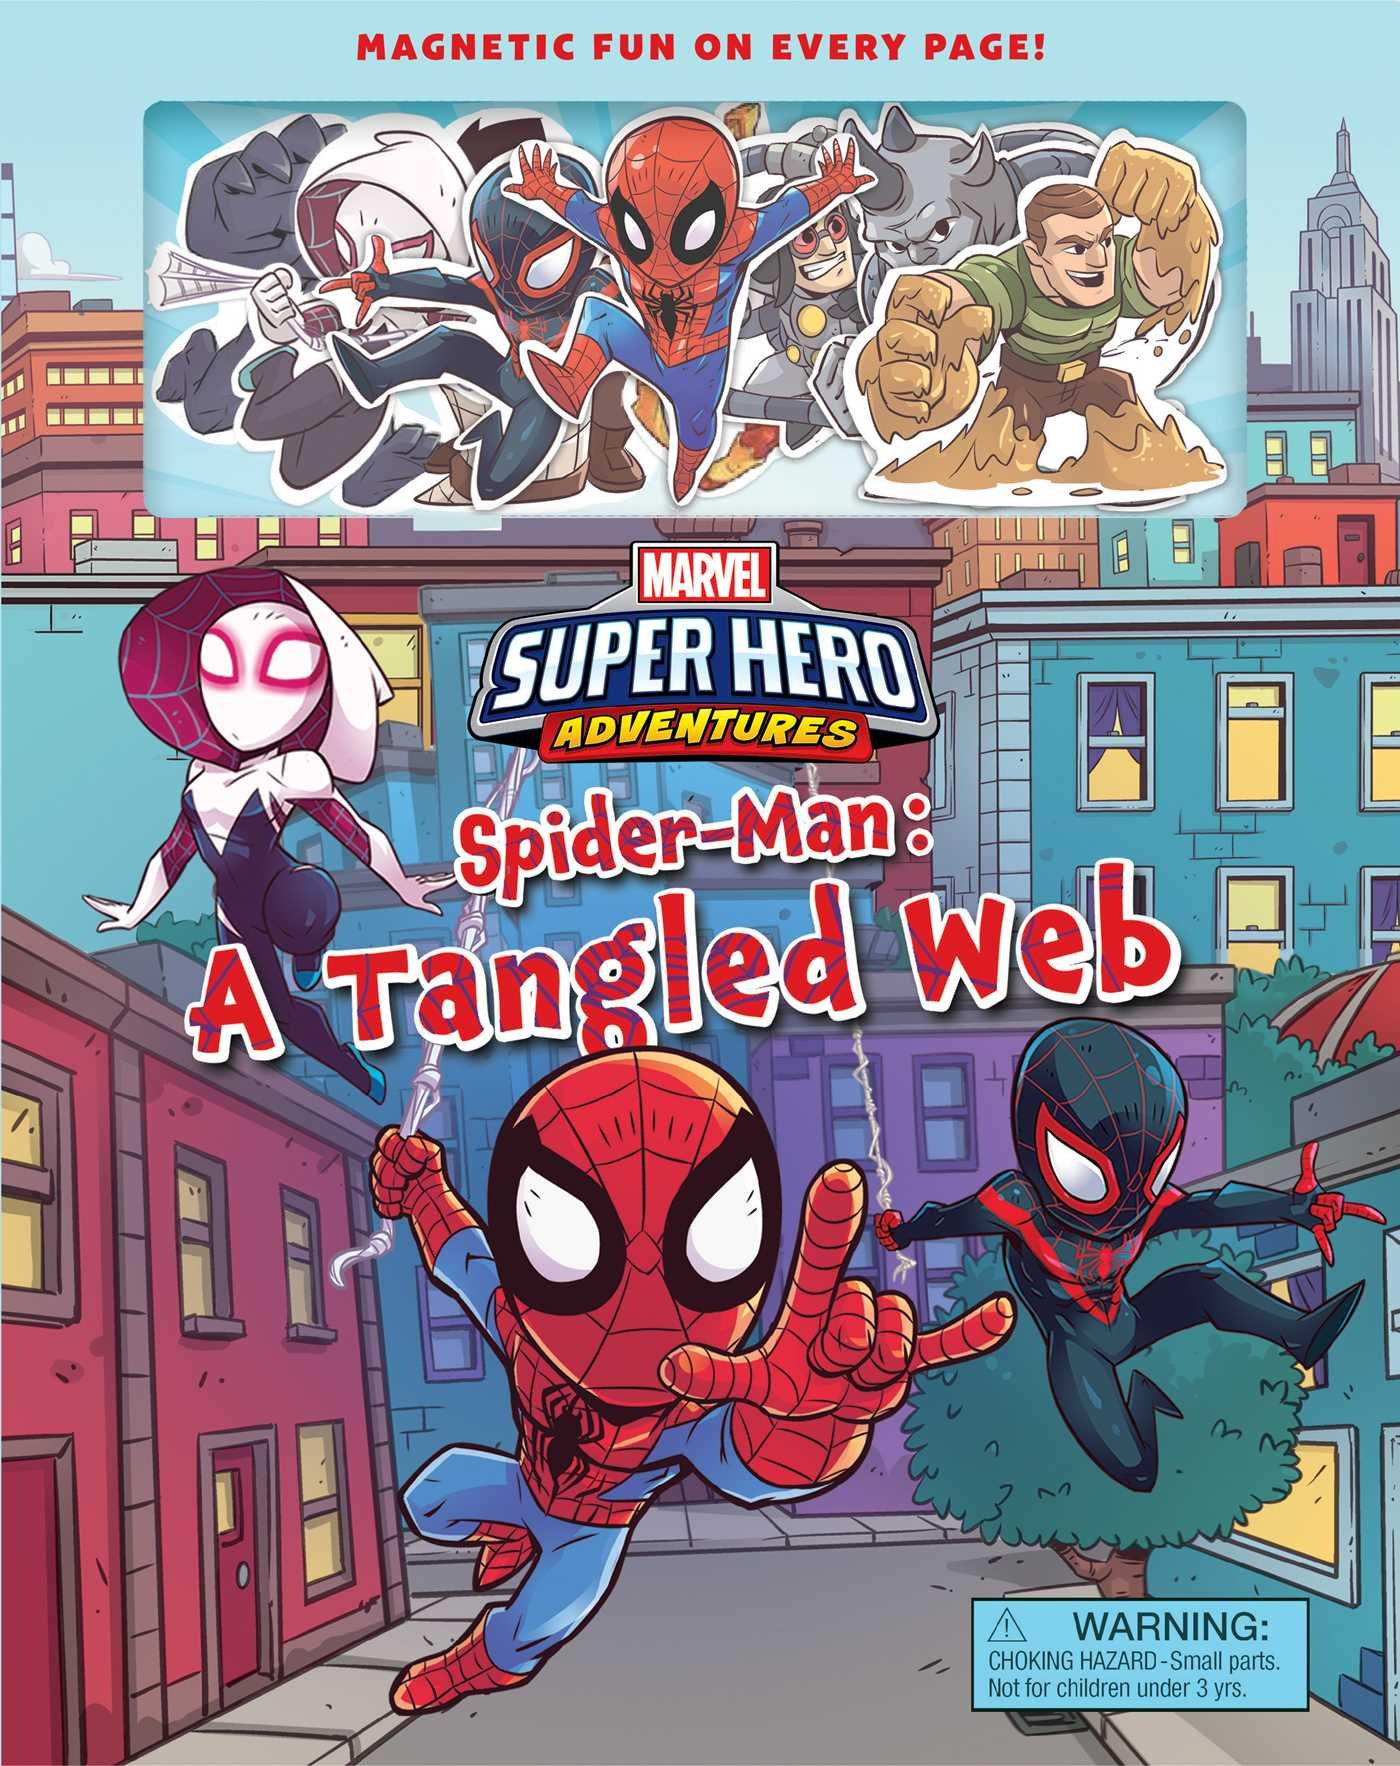 Marvel's Super Hero Adventures Spider-Man: A Tangled Web (Magnetic Hardcover)